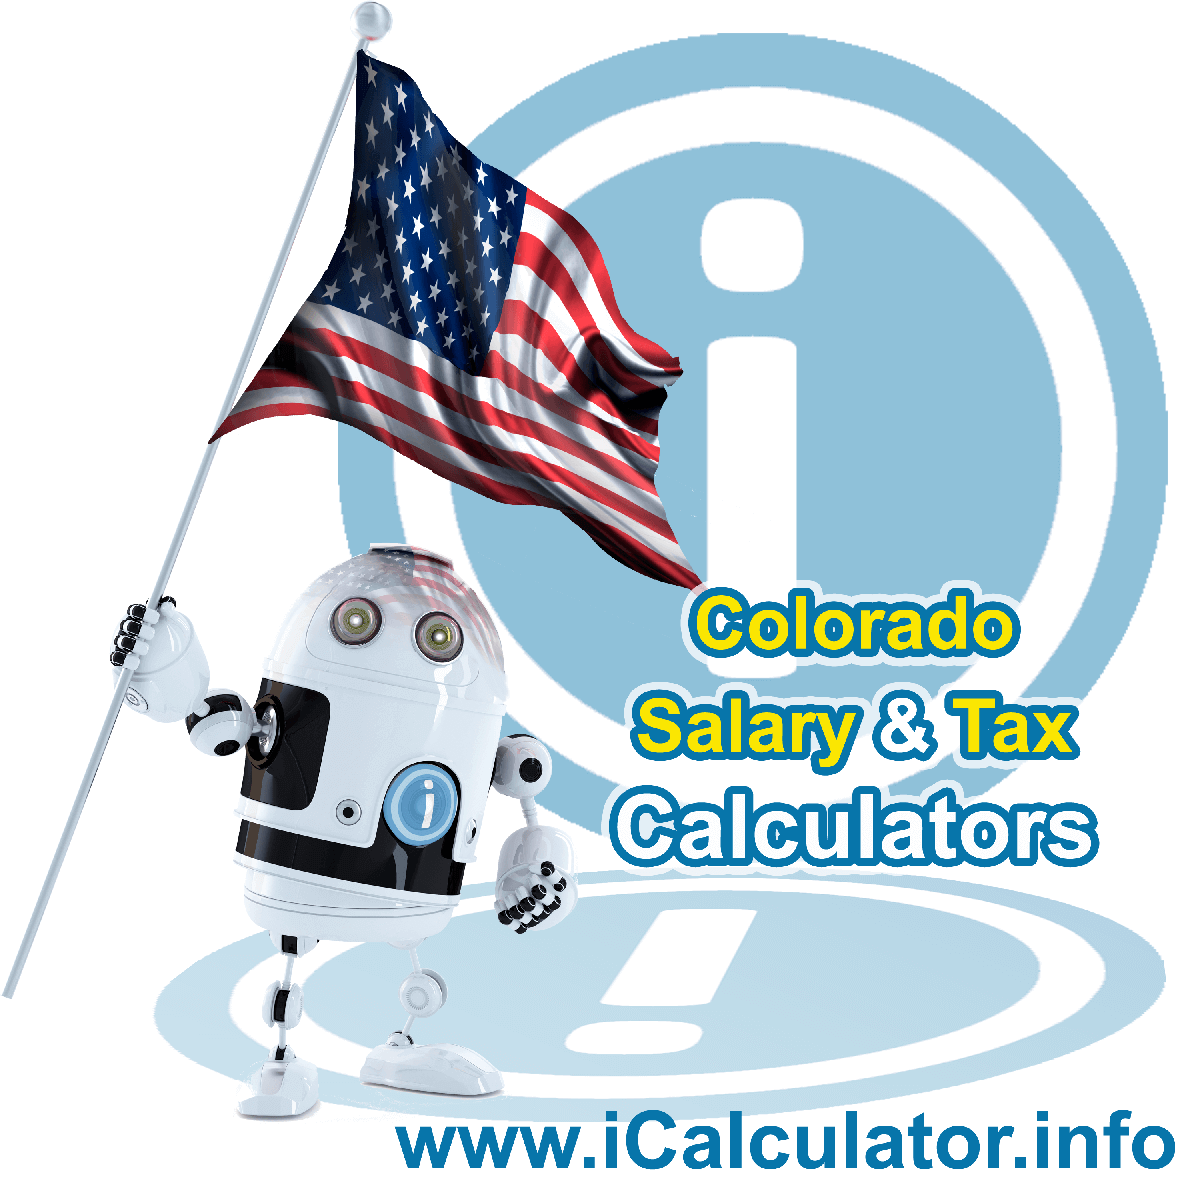 Colorado Salary Calculator 2020 | iCalculator | The Colorado Salary Calculator allows you to quickly calculate your salary after tax including Colorado State Tax, Federal State Tax, Medicare Deductions, Social Security, Capital Gains and other income tax and salary deductions complete with supporting Colorado state tax tables